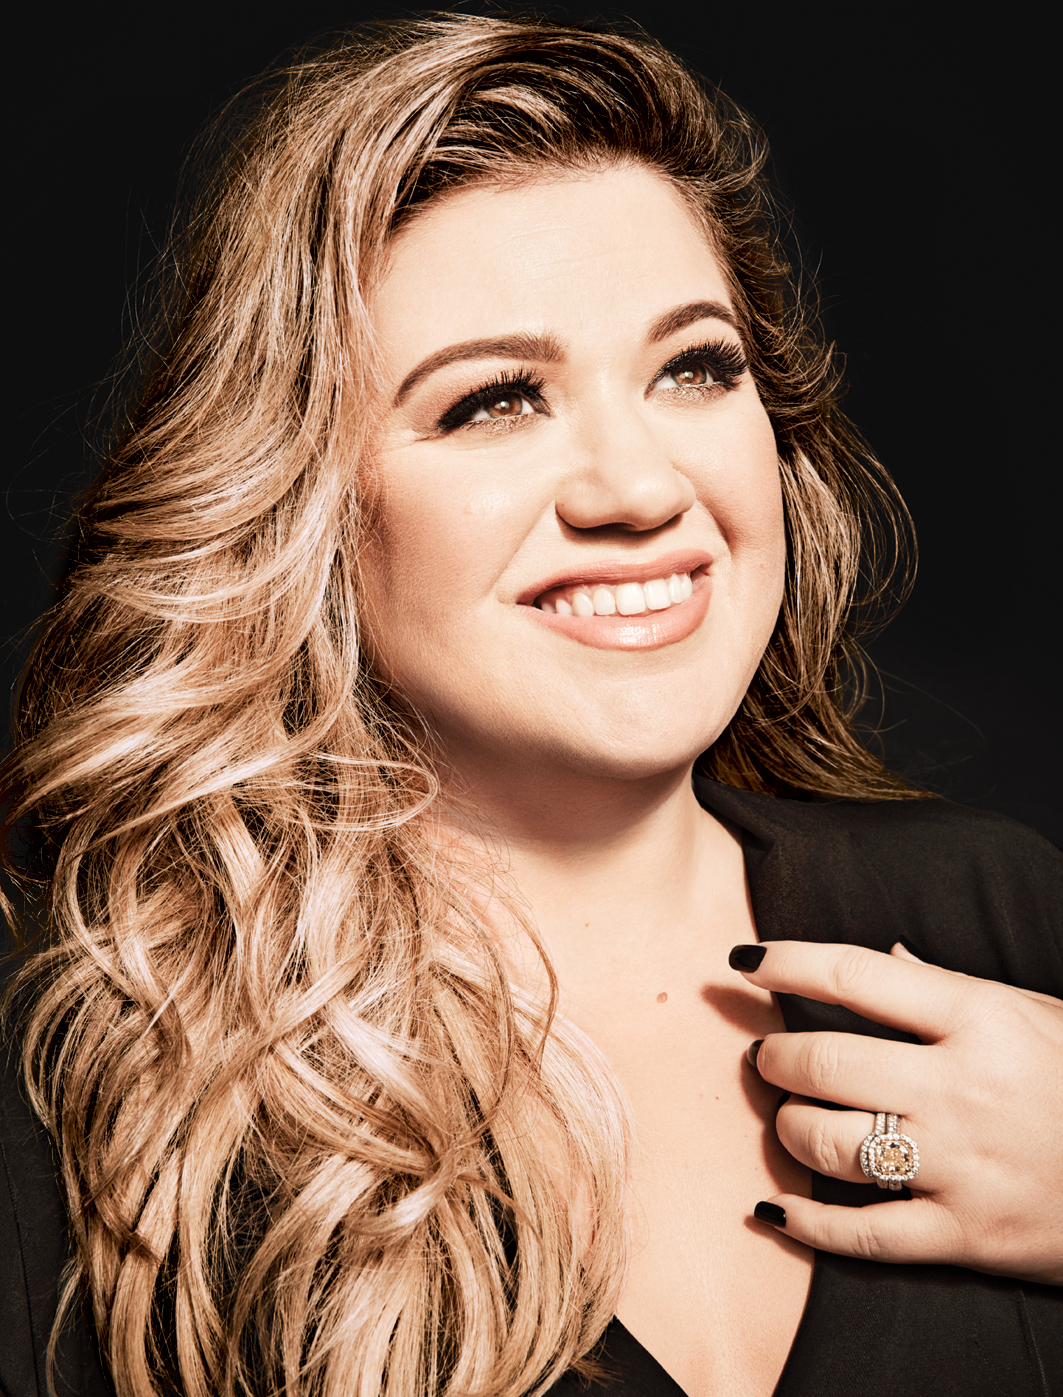 Kelly Clarkson on 'The Voice,' New Album, Her Clashes With